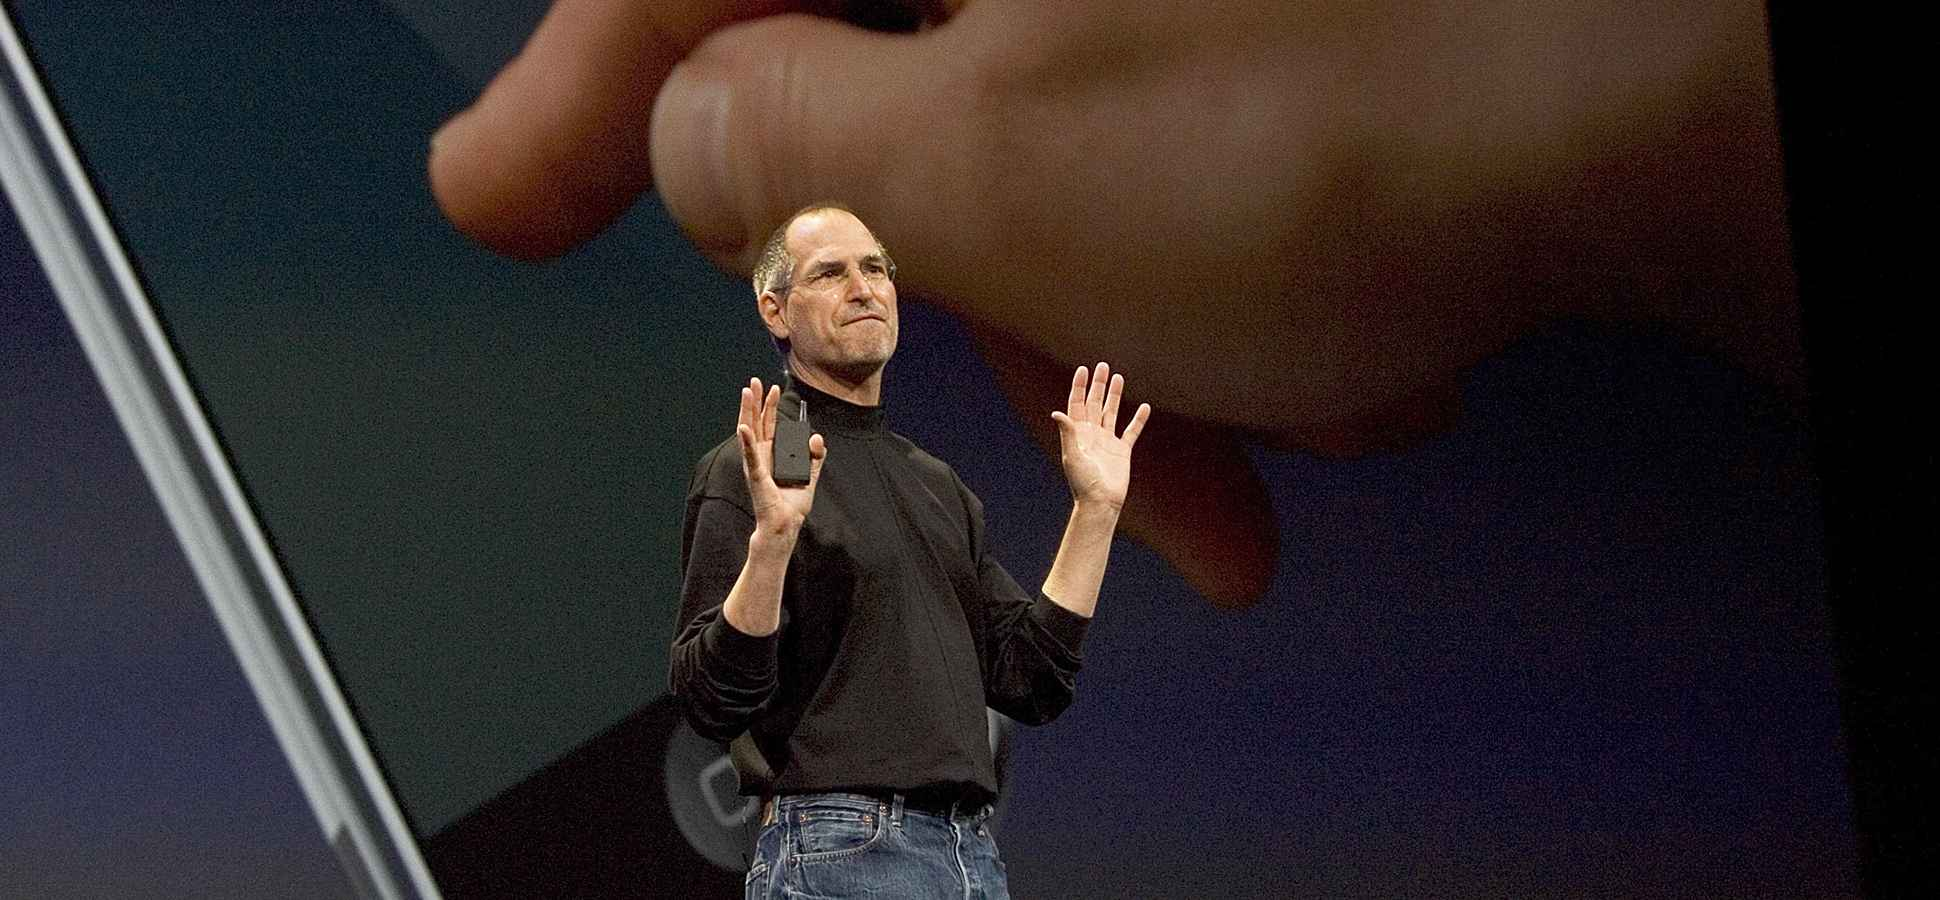 5 Reasons Why Steve Jobs's iPhone Keynote Is Still the Best